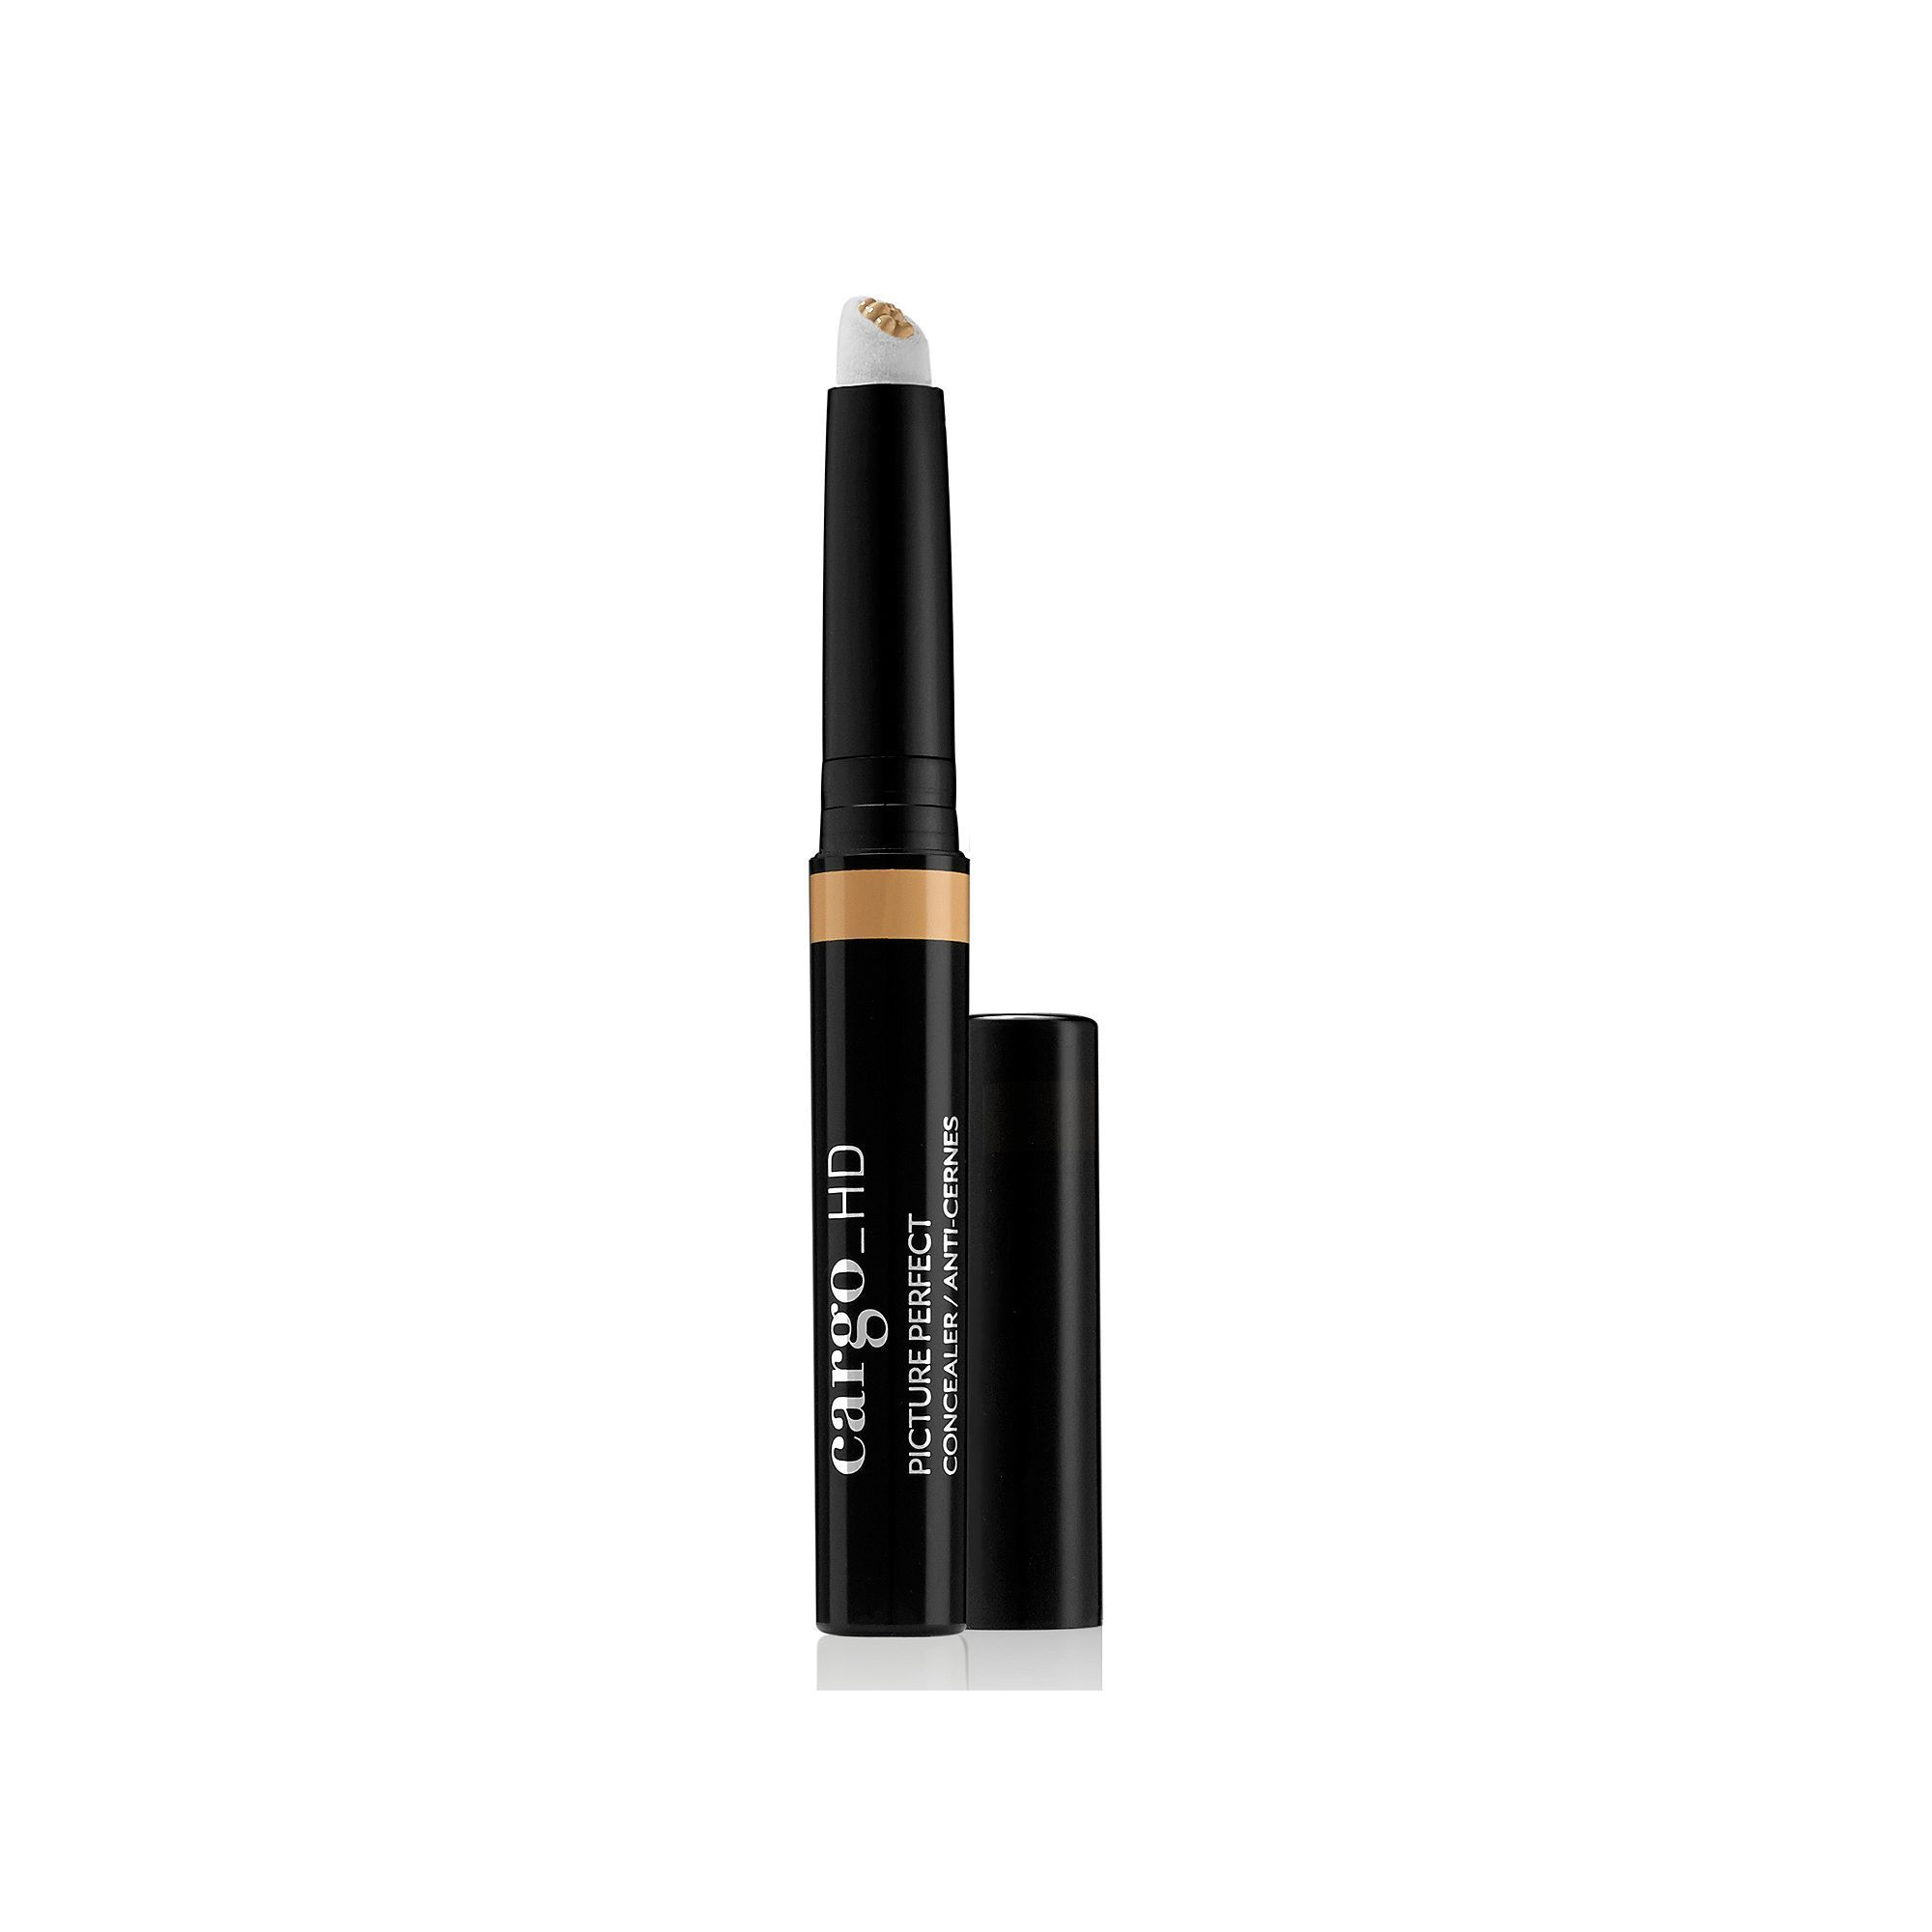 Cargo Hd Picture Perfect Concealer Beiggreen Beigkhaki Hd